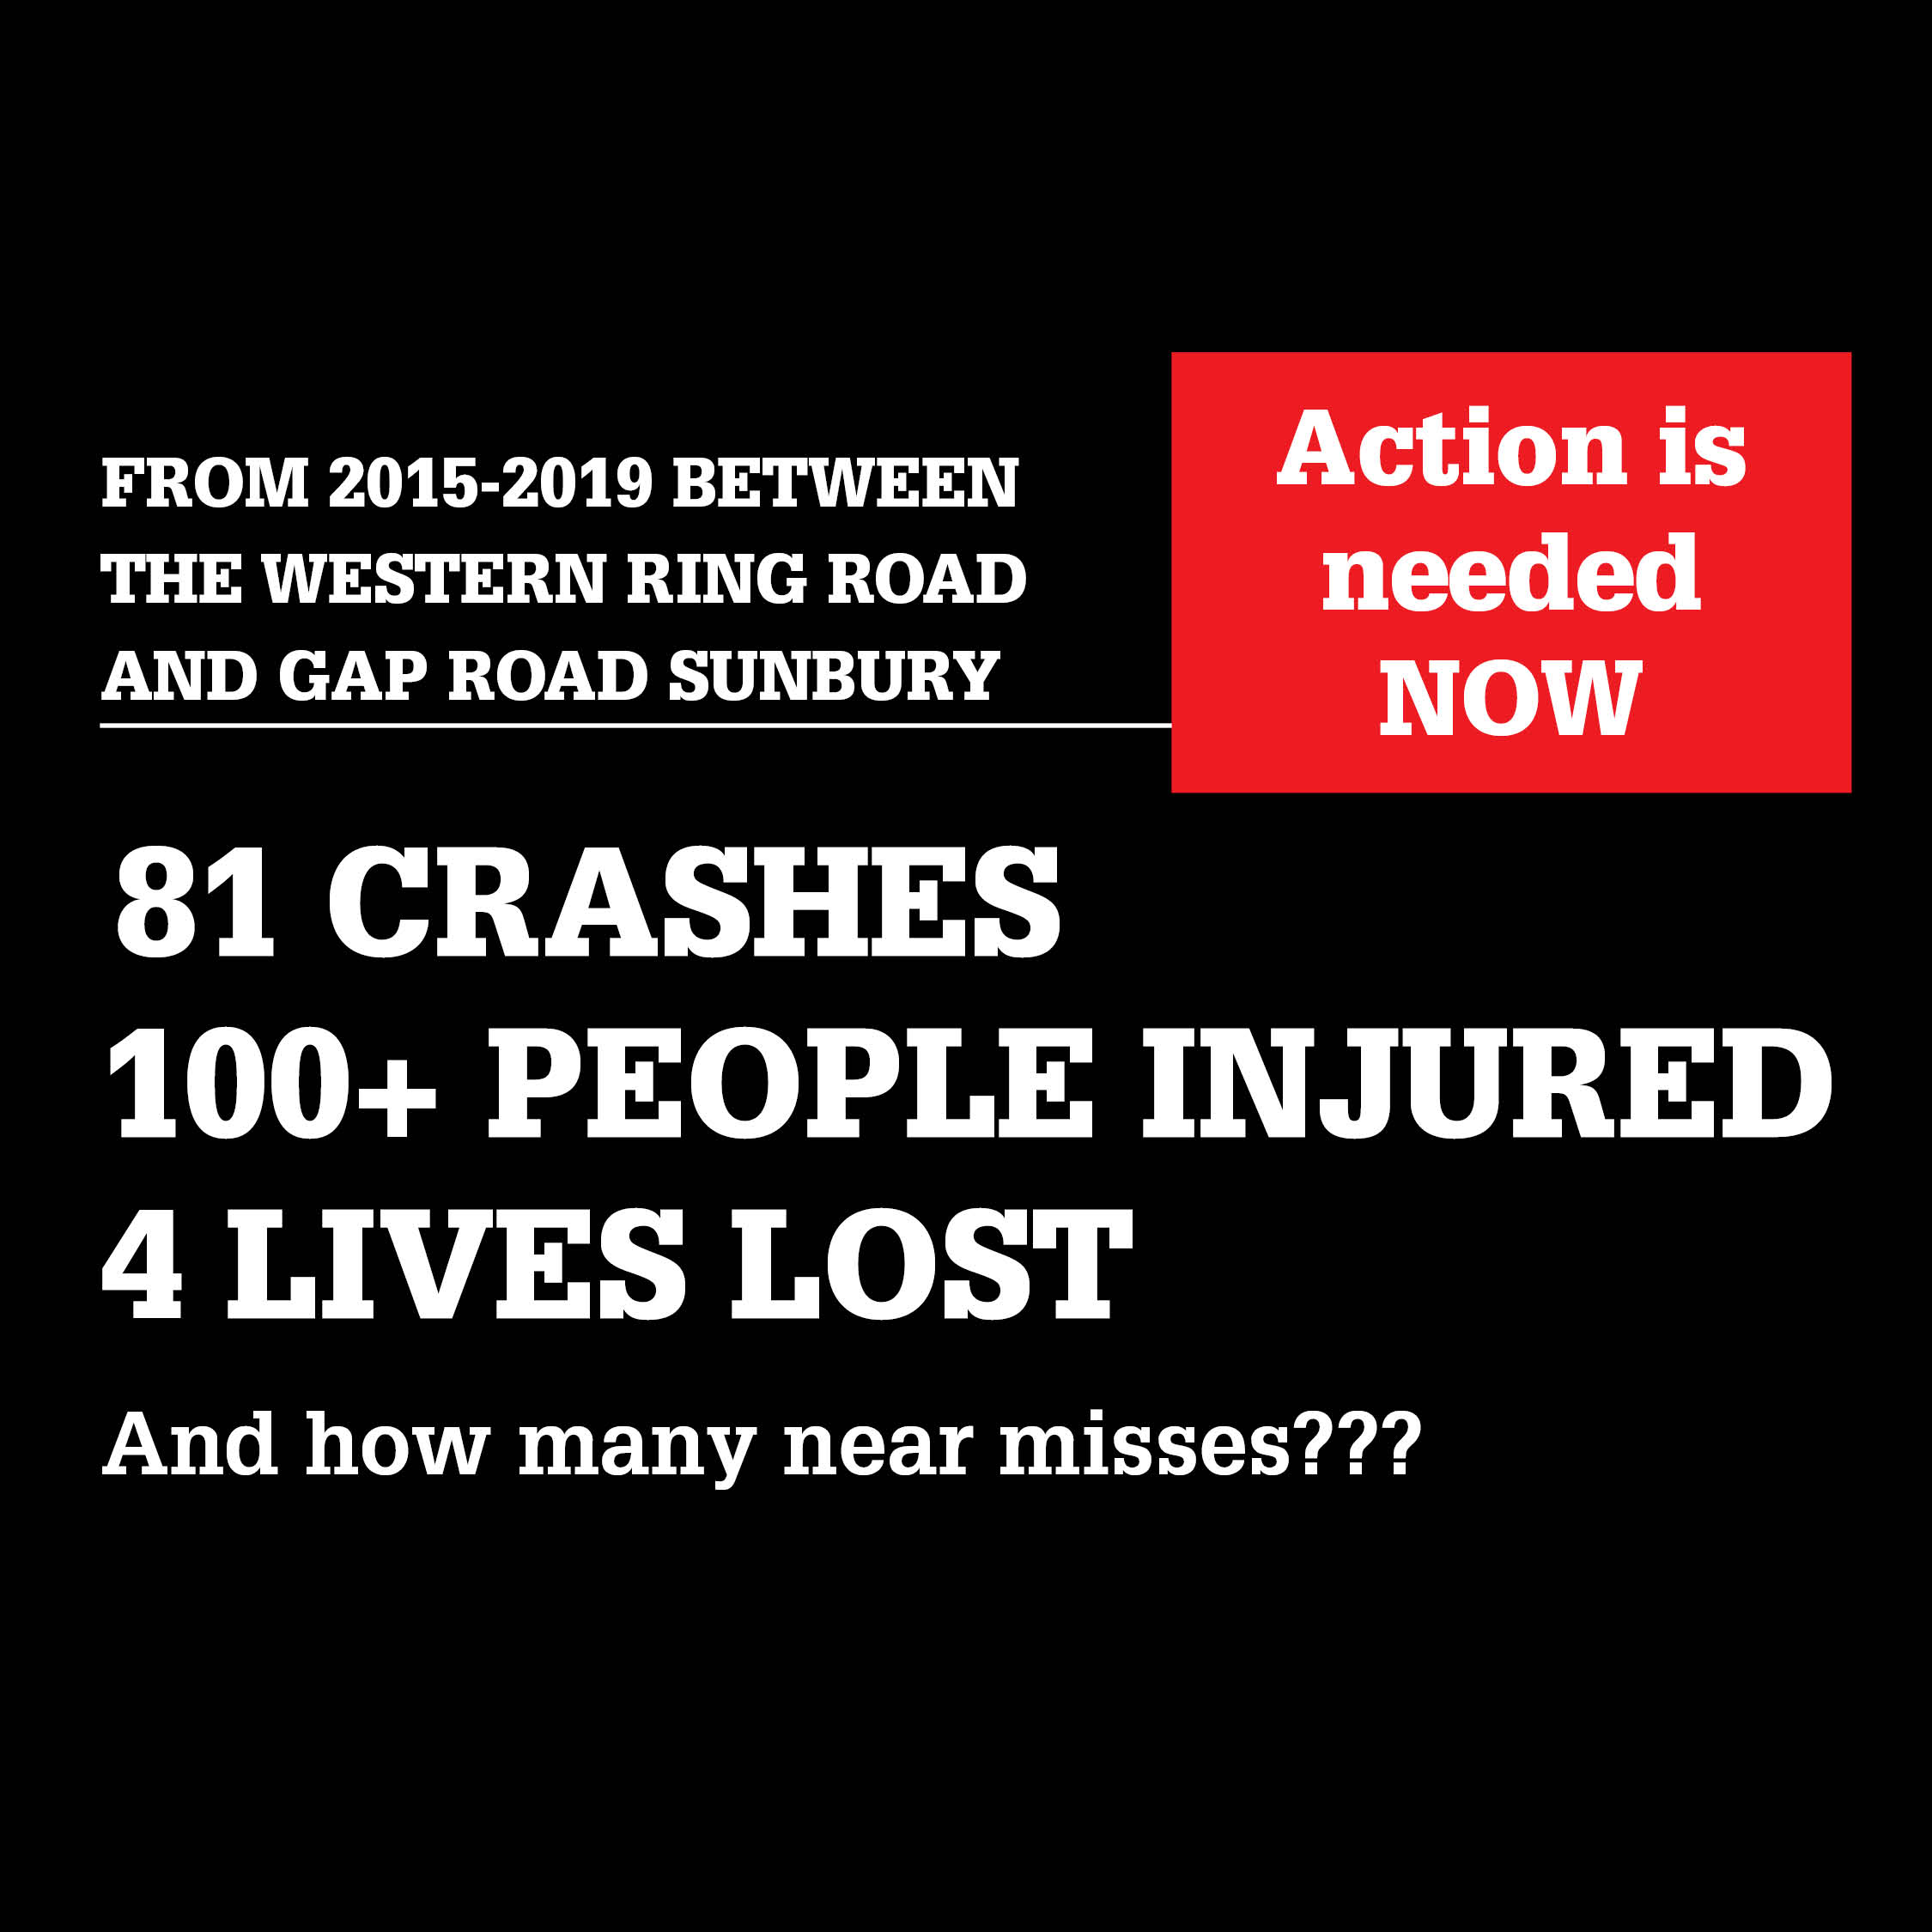 Action is needed now. From 2015-2019 between the Western Ring Road and Gap Road Sunbury - 81 crashes, 100+ people injured, 4 lives lost